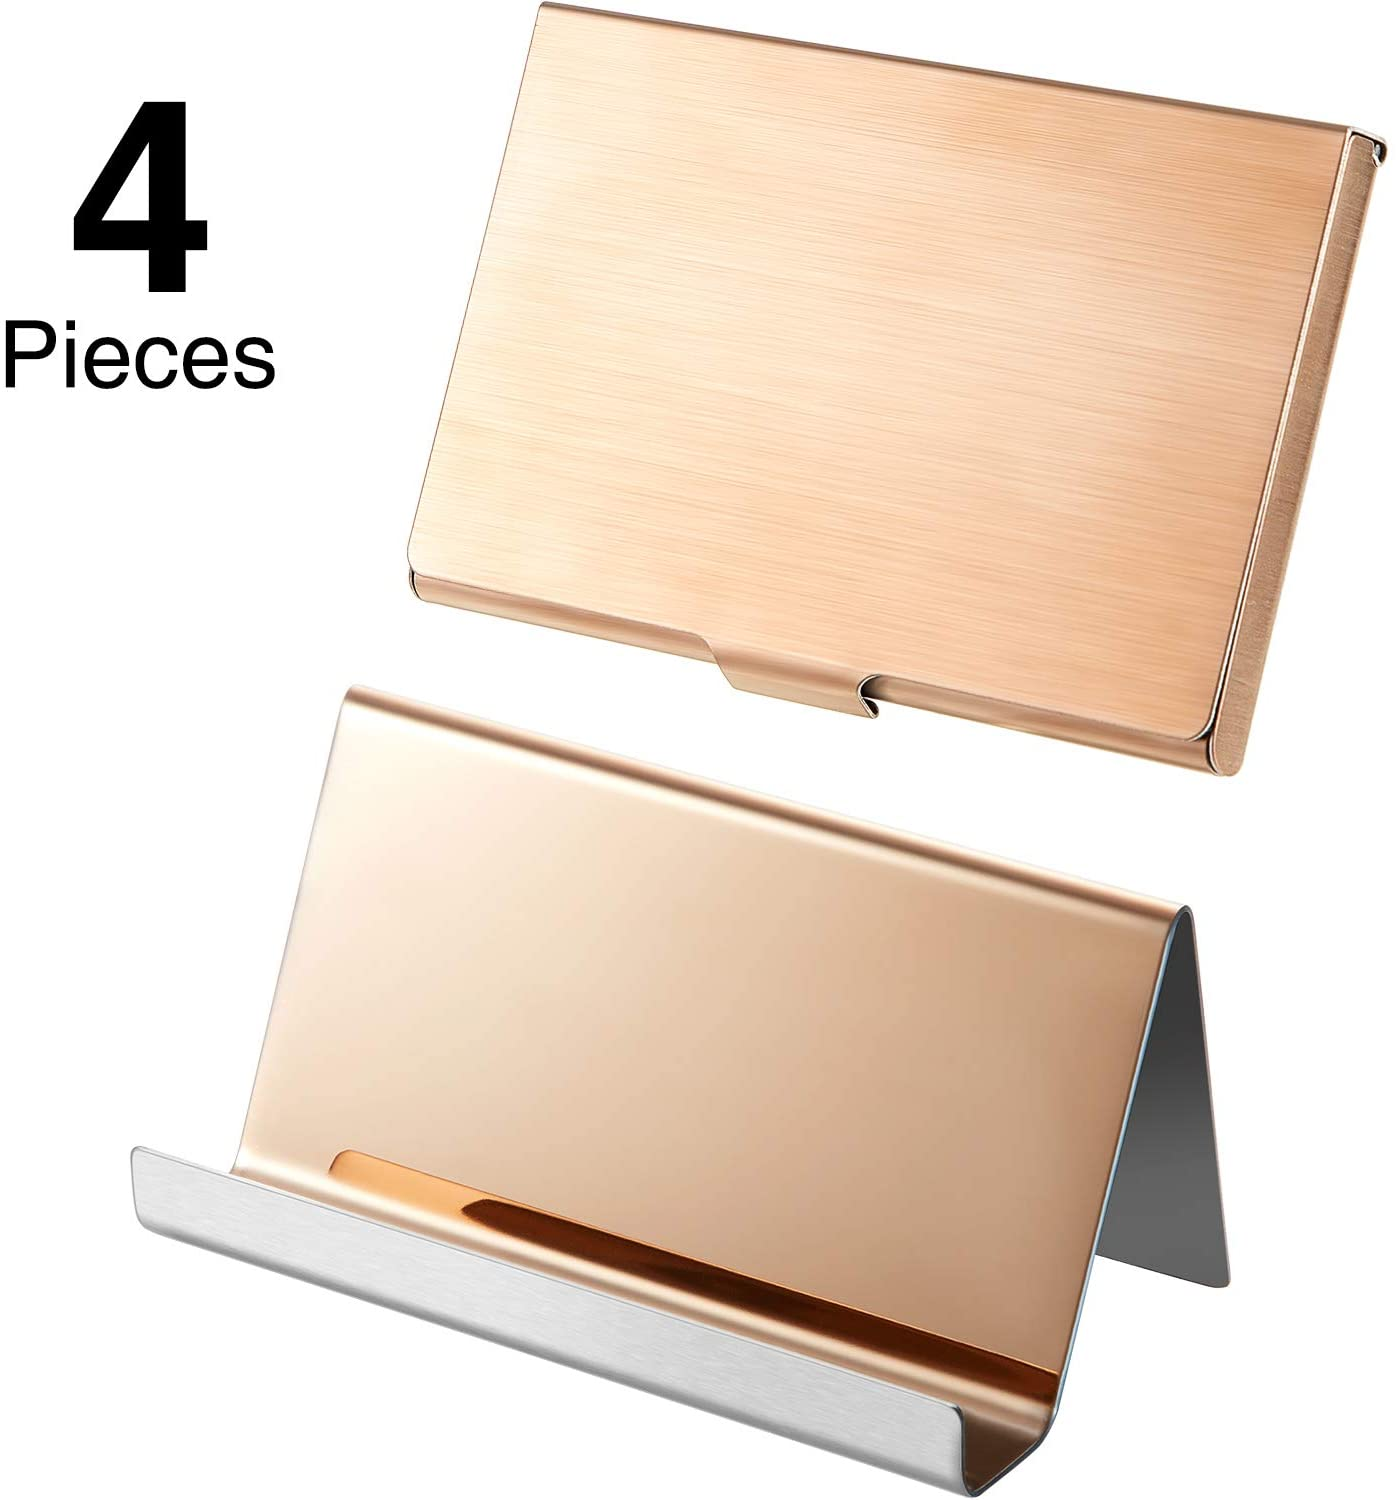 4 Pieces Stainless Steel Business Card Case Rose Gold Business Card Holder Desktop Card Display Stand for Card Displaying